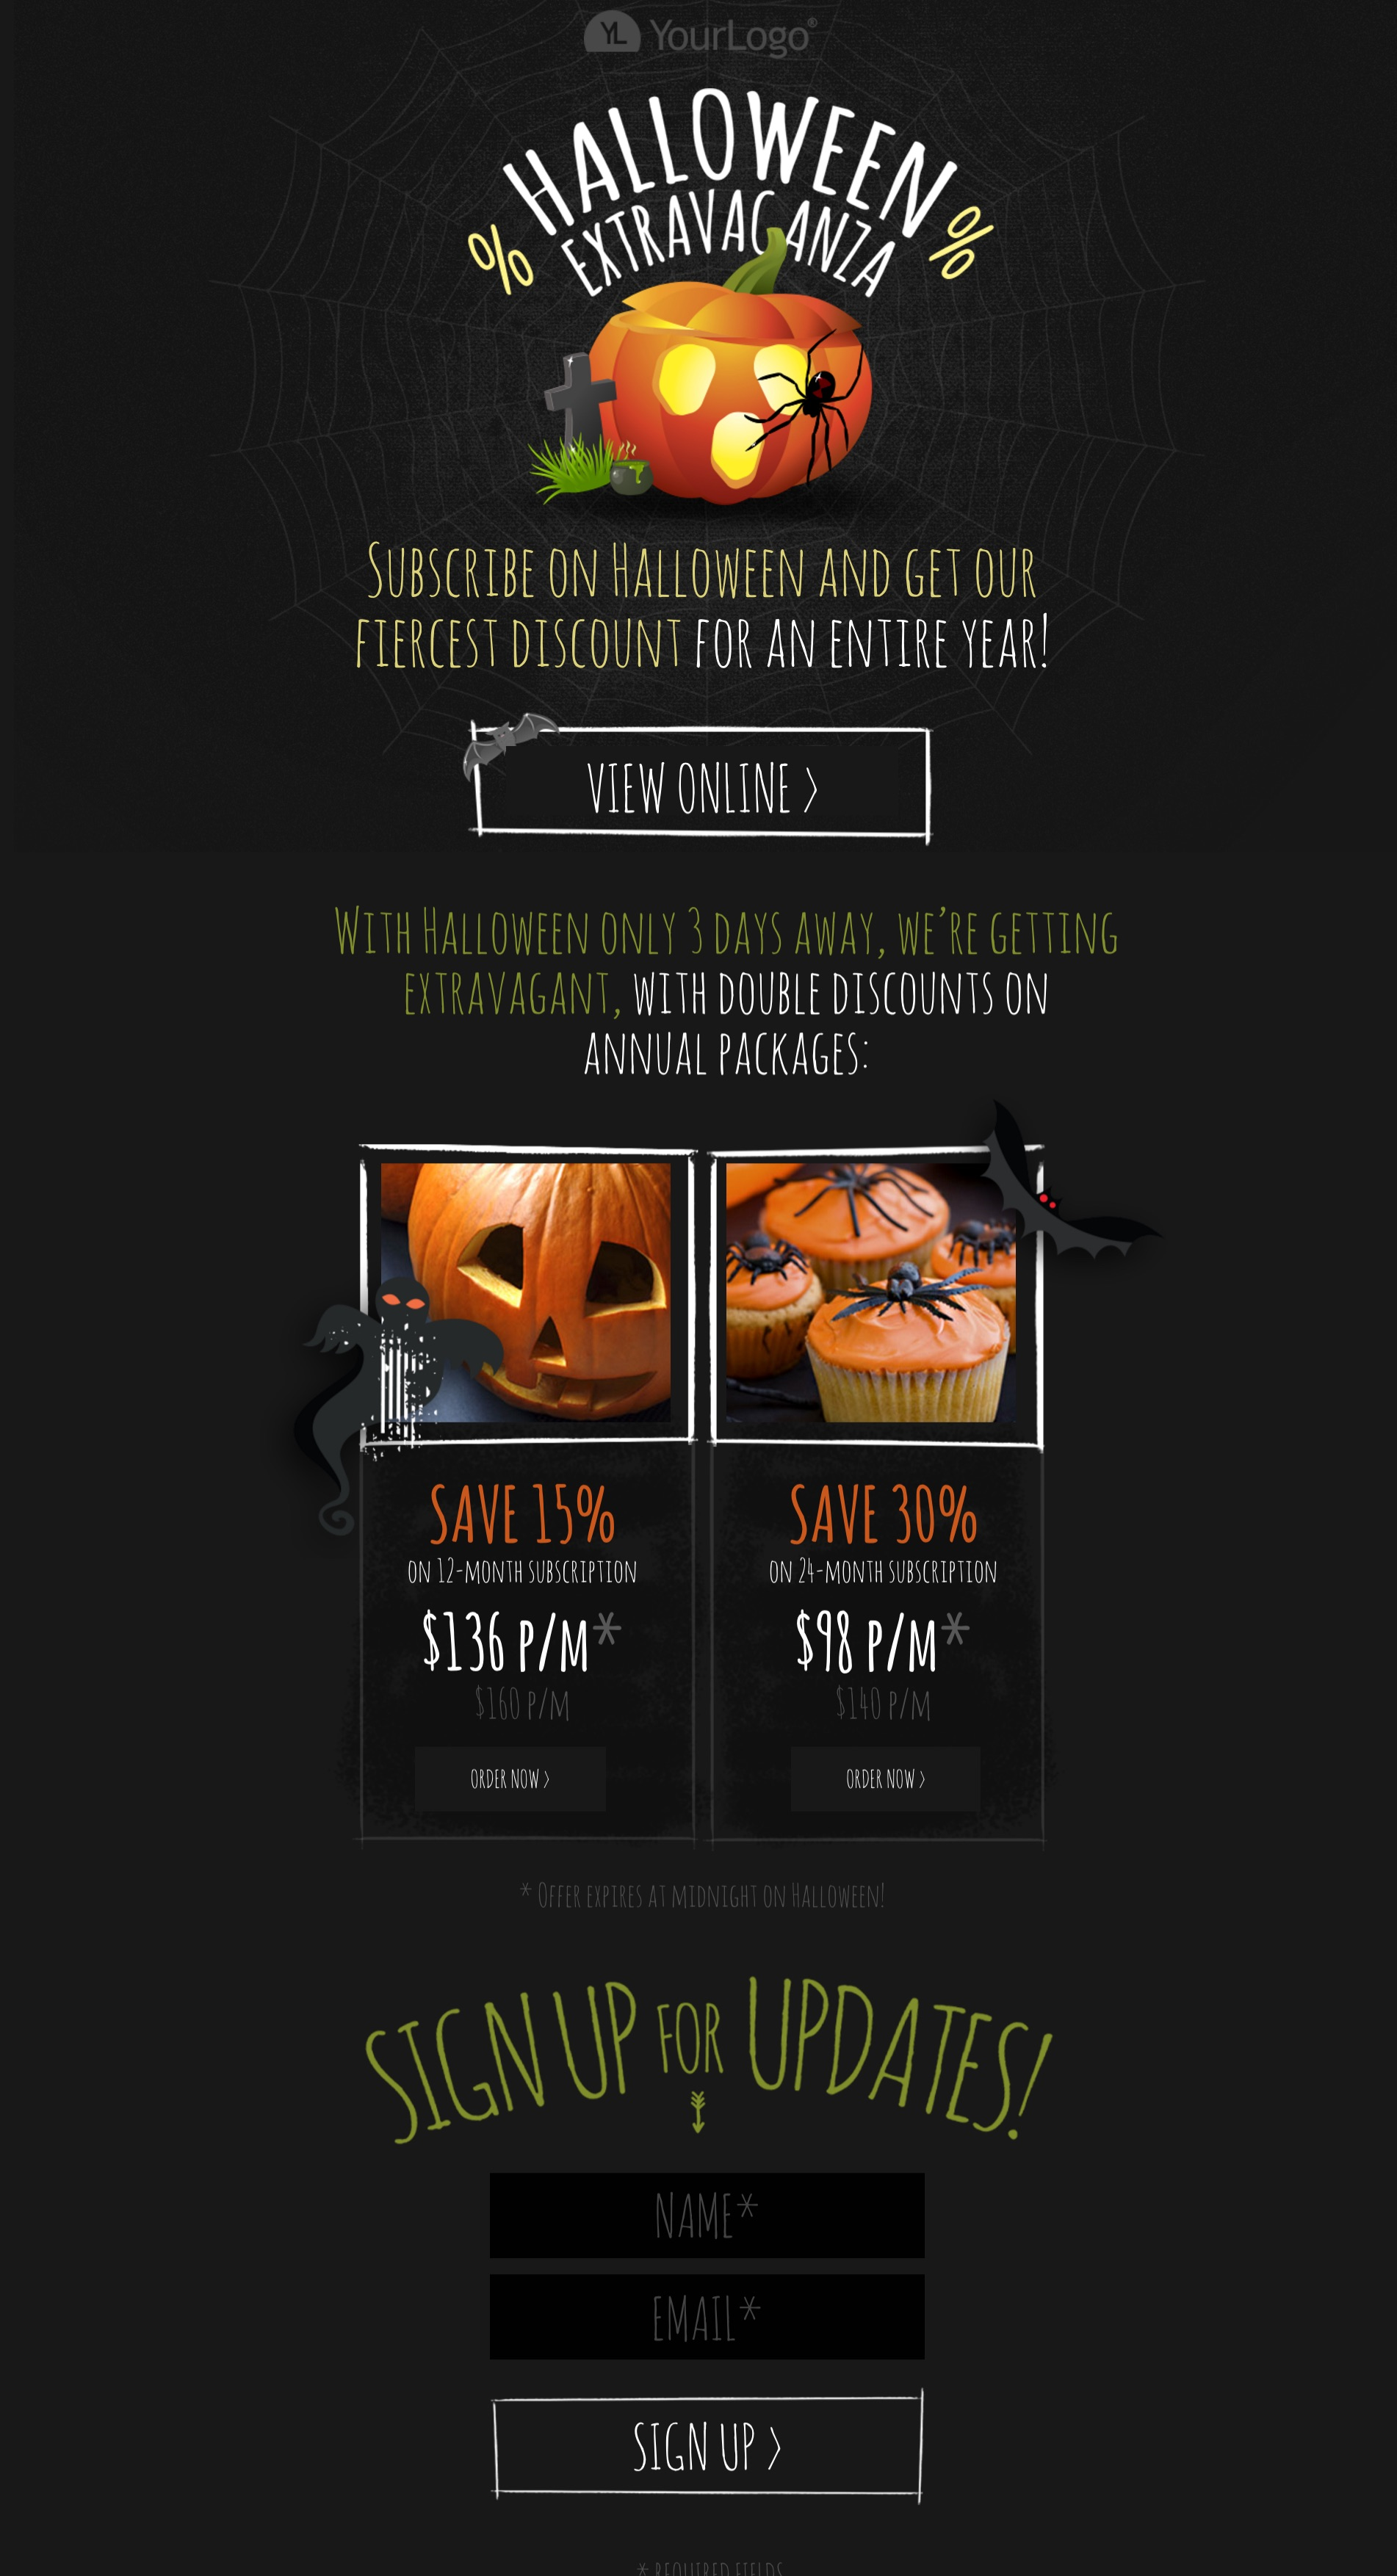 Dark Themed Halloween Extravaganza Landing Page with pumpkins, spiders, bats